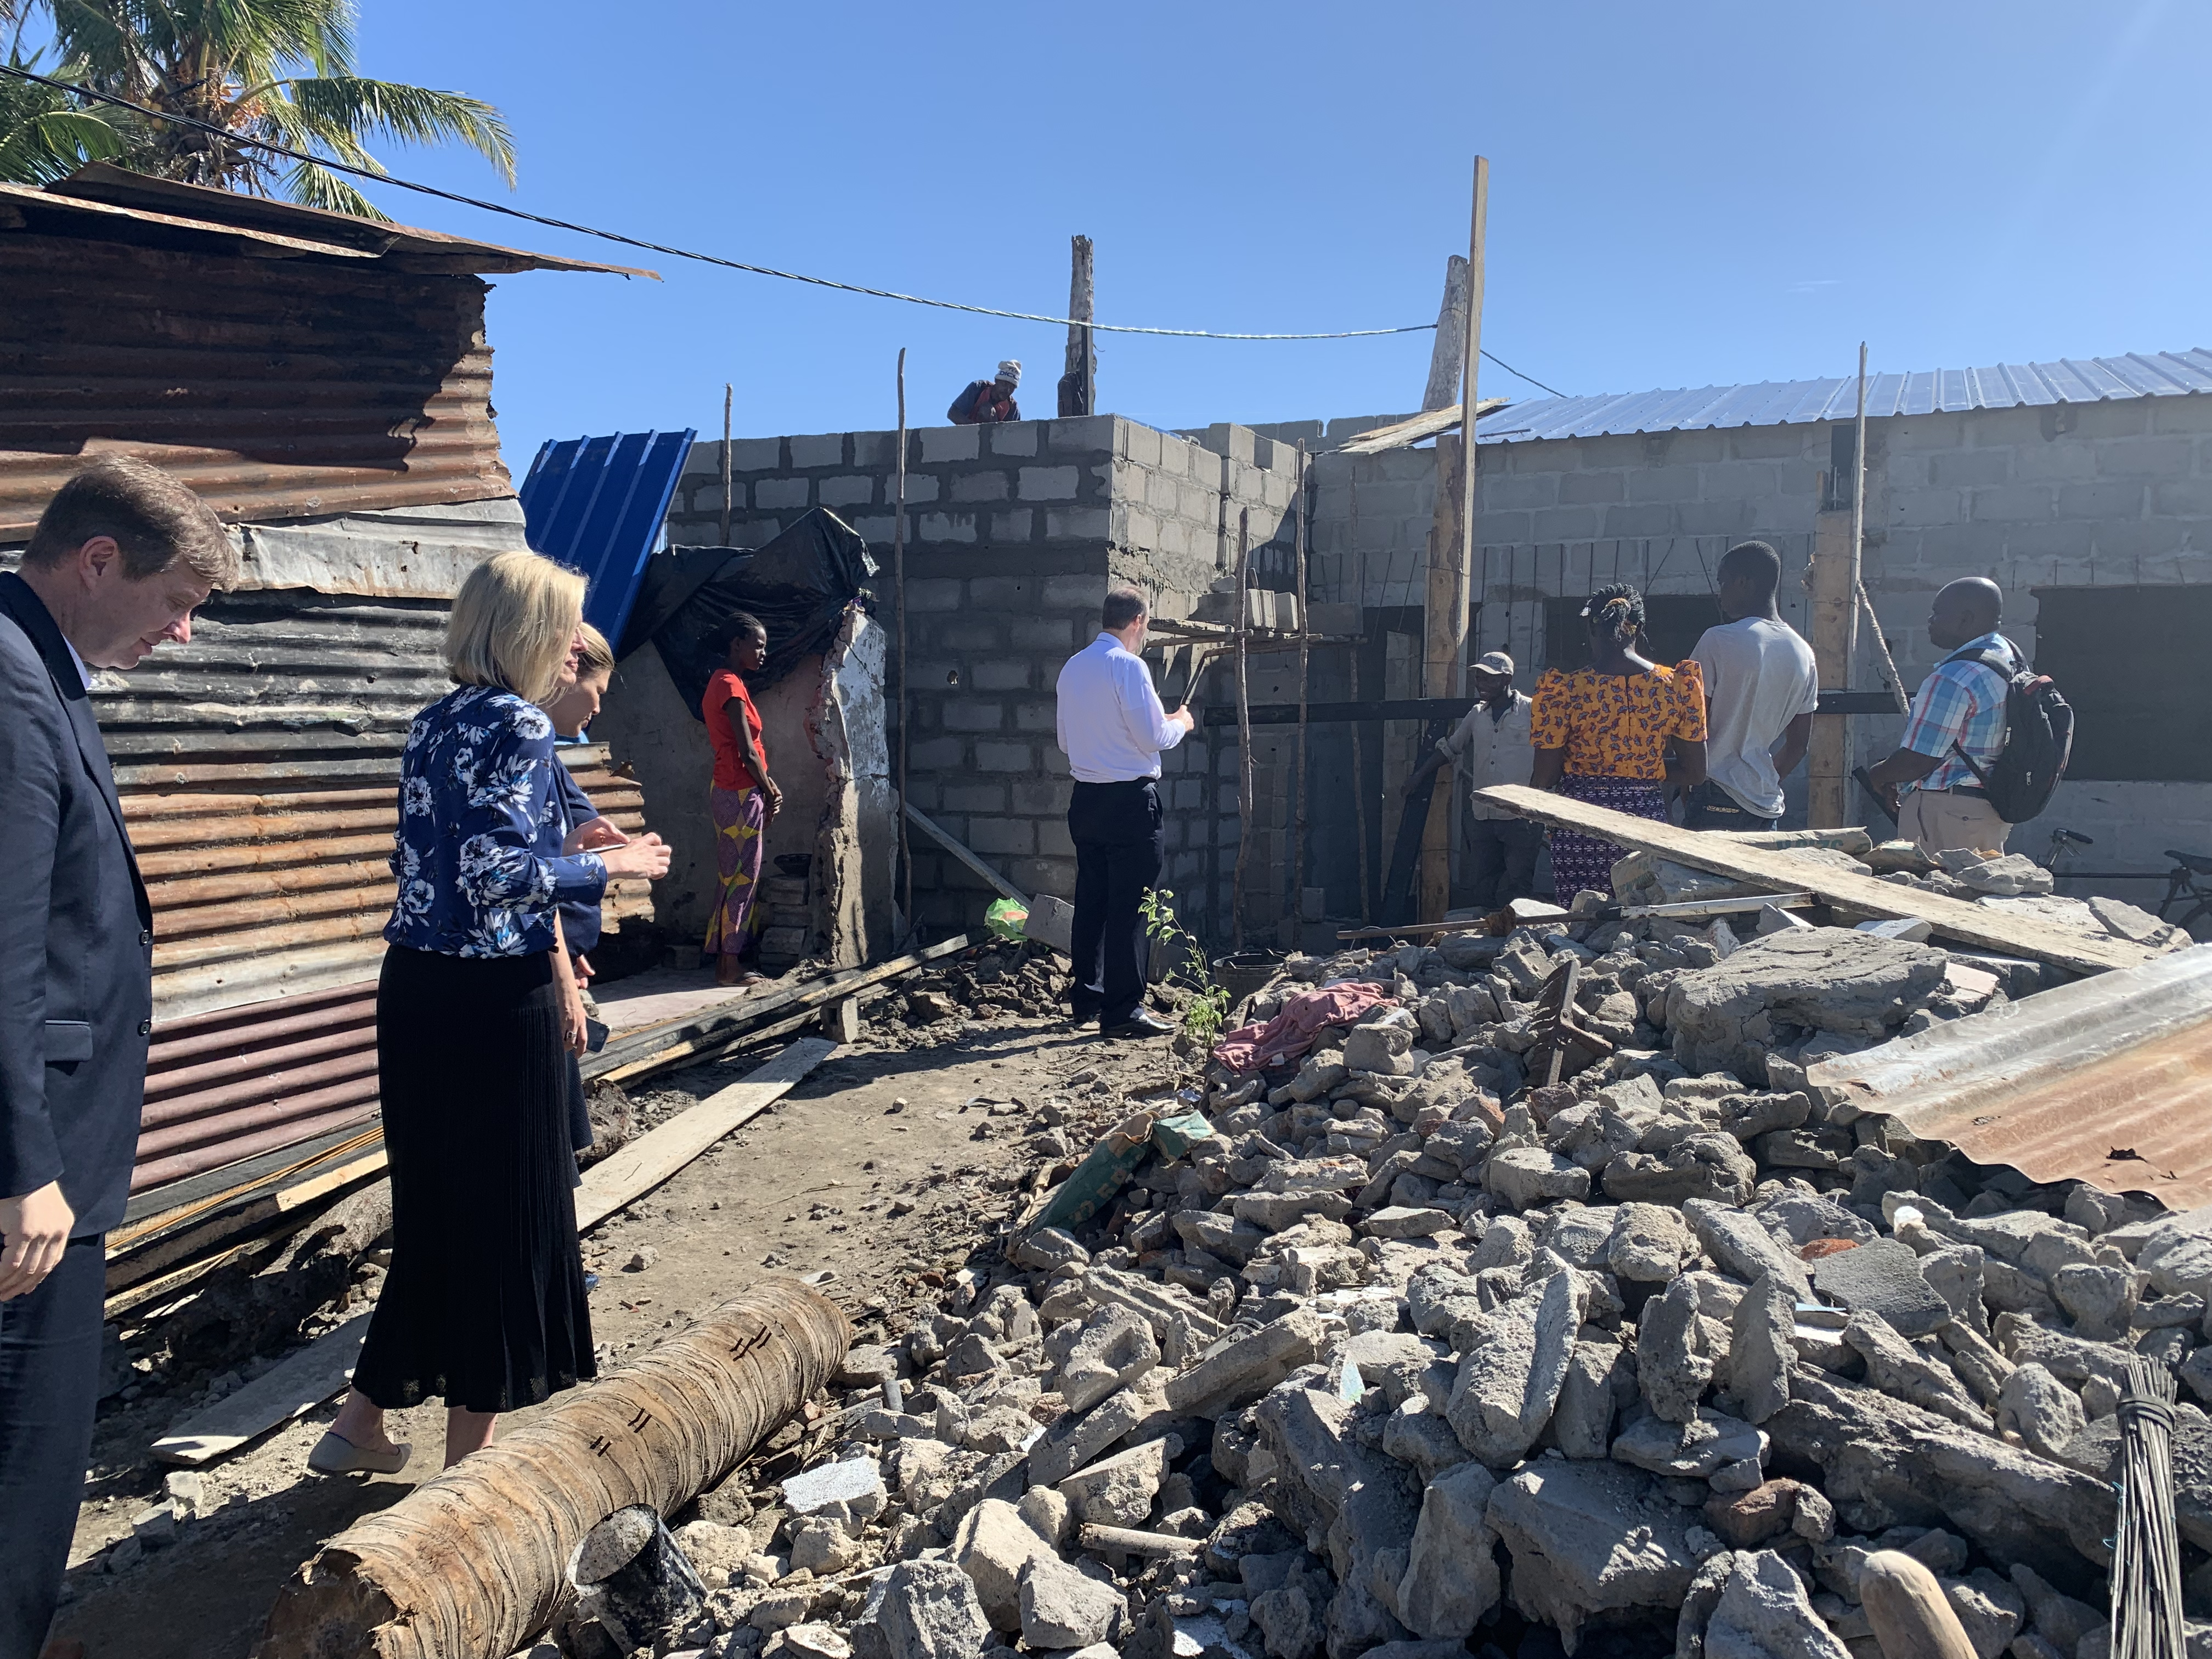 Sister Bonnie H. Cordon visits the sites of member homes that were destroyed in a recent cyclone in Beira, Mozambique.